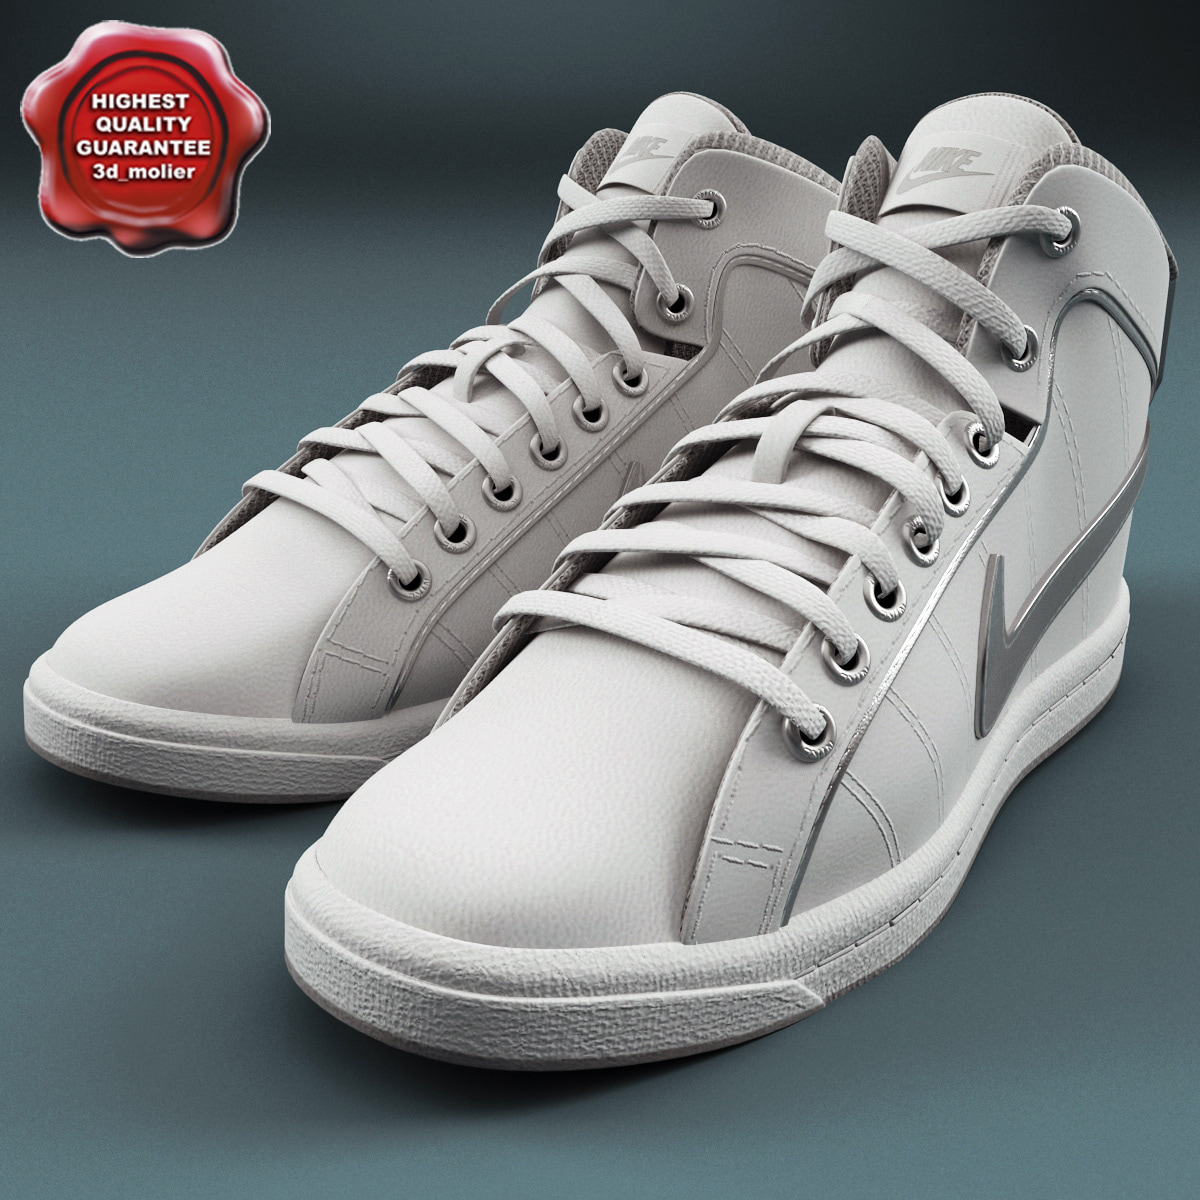 Sneakers_Nike_Court_Tradition_00.jpg